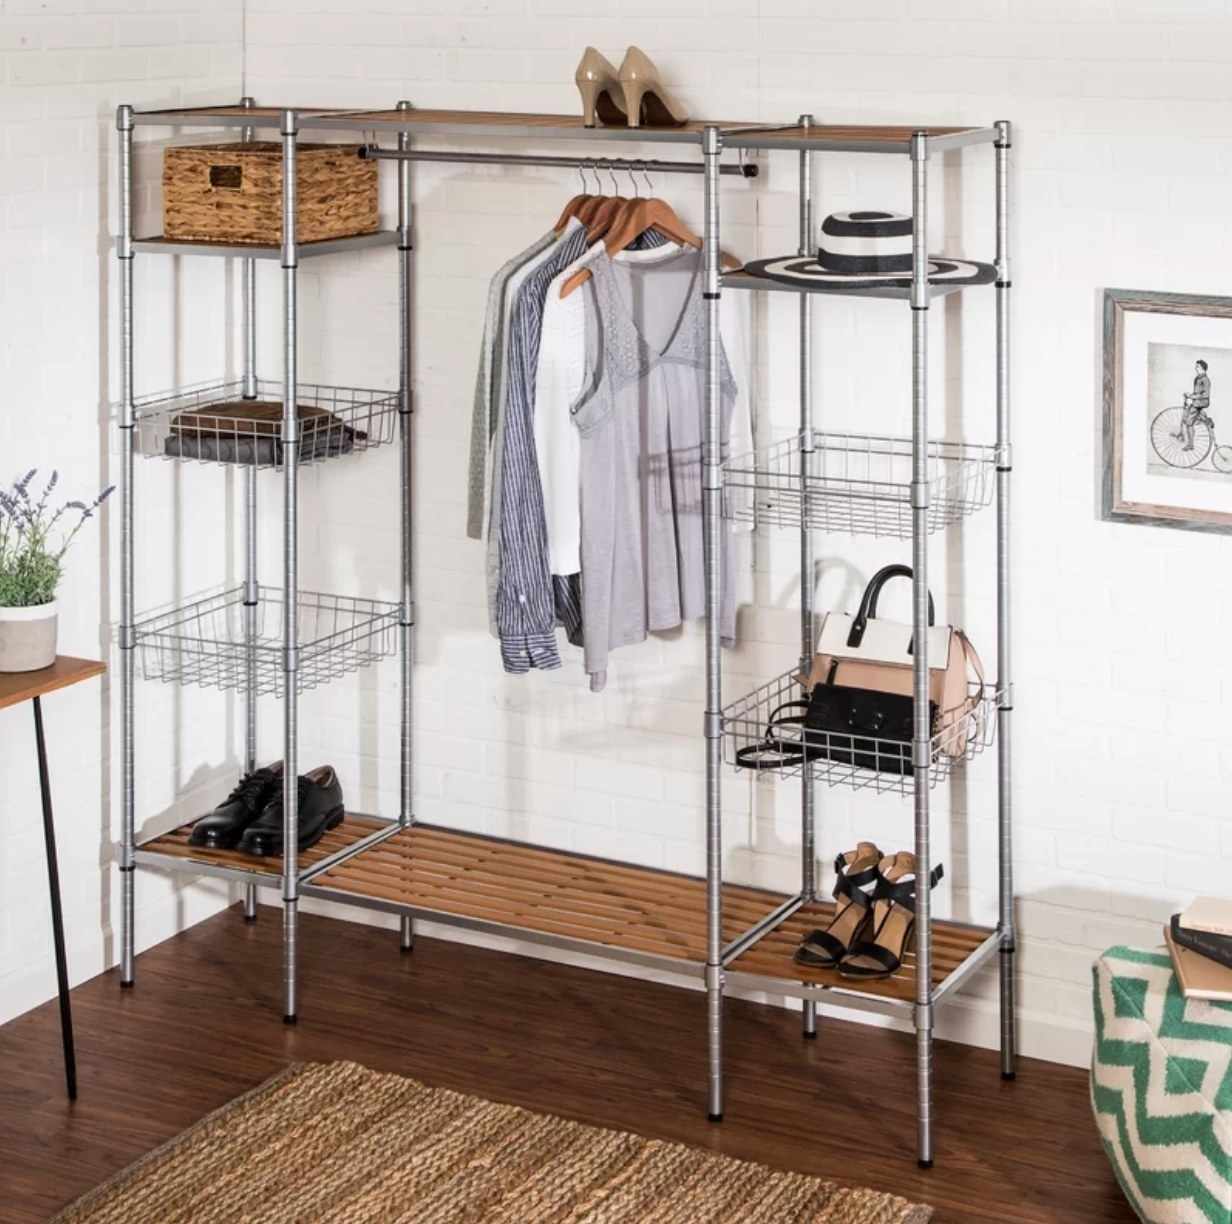 The closet system made of wood and stainless steel